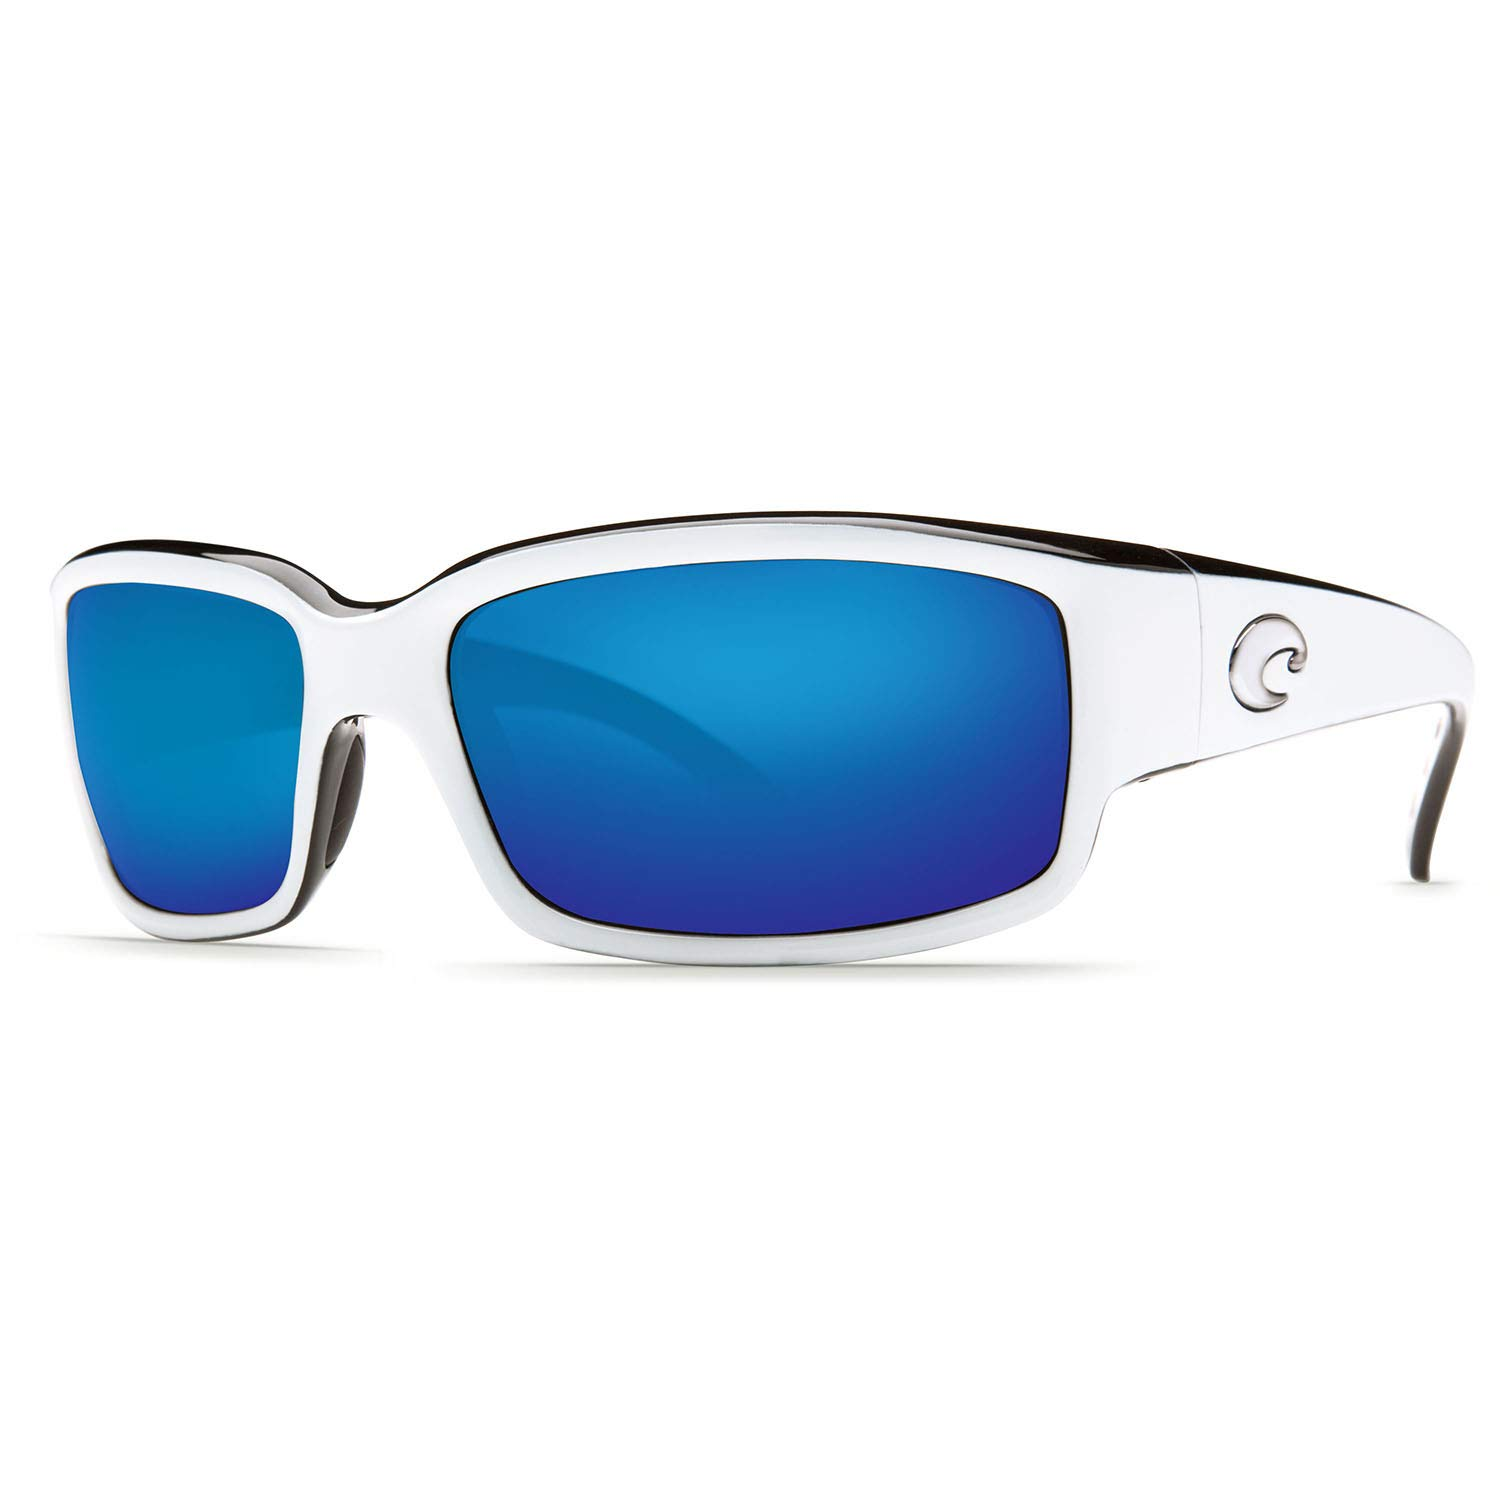 Costa Del Mar Sunglasses - Caballito- Glass / Frame: White and Black Lens: Polarized Blue Mirror Wave 580 Glass-CL30BMG580 by Costa Del Mar